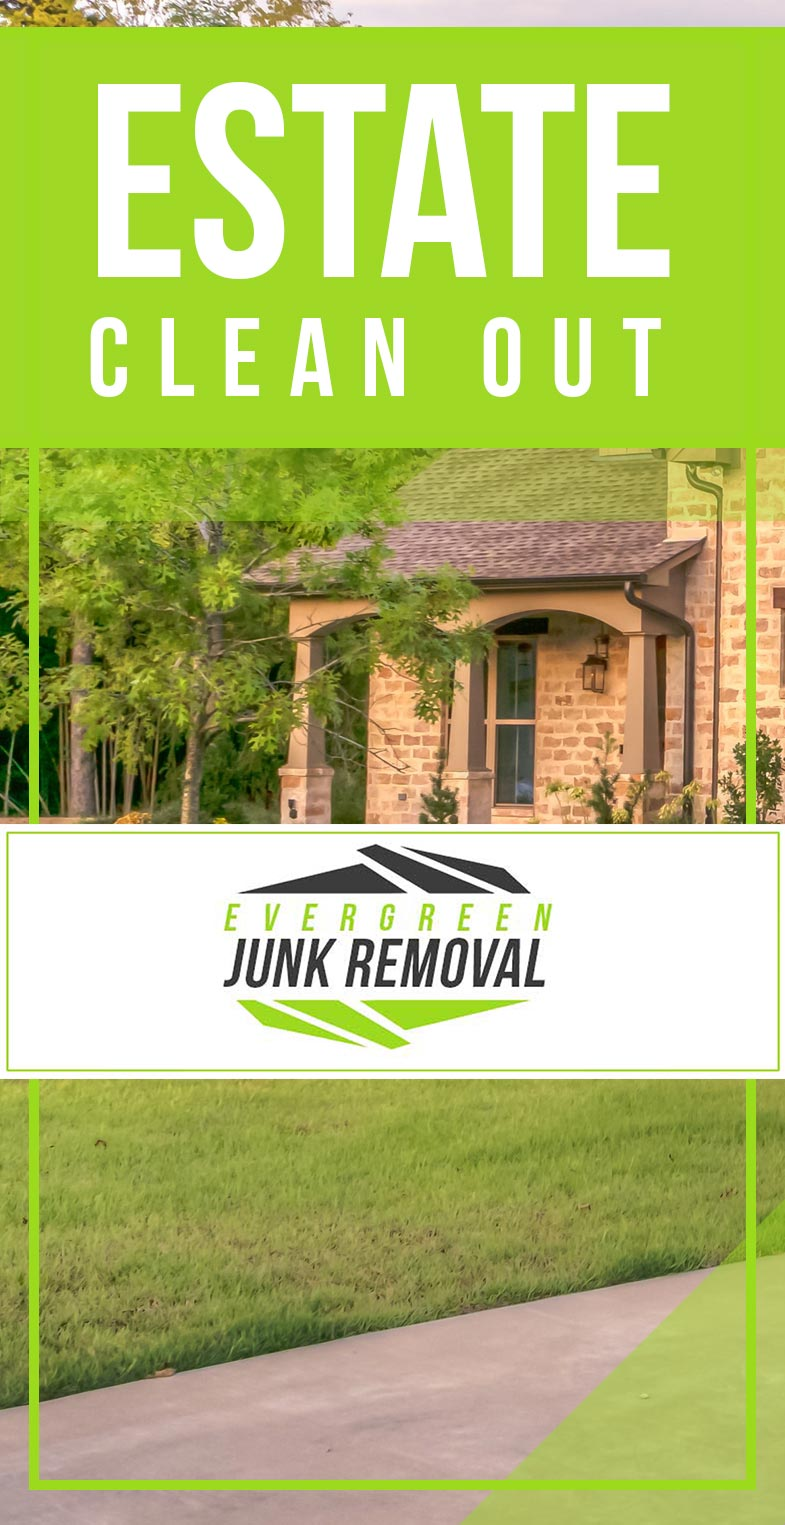 Fountain Hills Property Clean Out